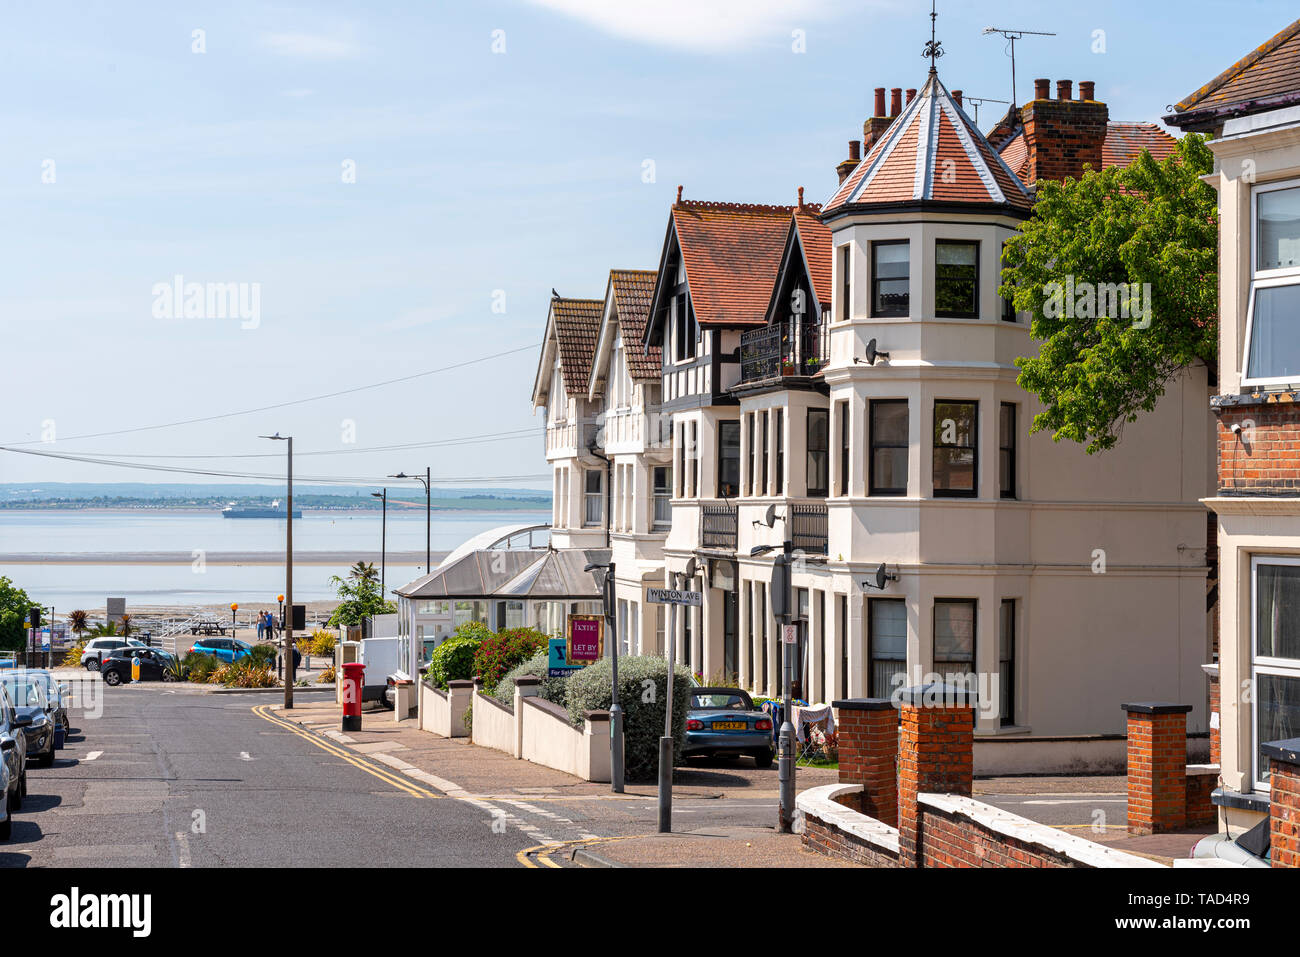 westcliff-avenue-in-westcliff-on-sea-southend-essex-uk-looking-towards-the-thames-estuary-on-seafront-seaside-town-space-for-copy-TAD4R9.jpg